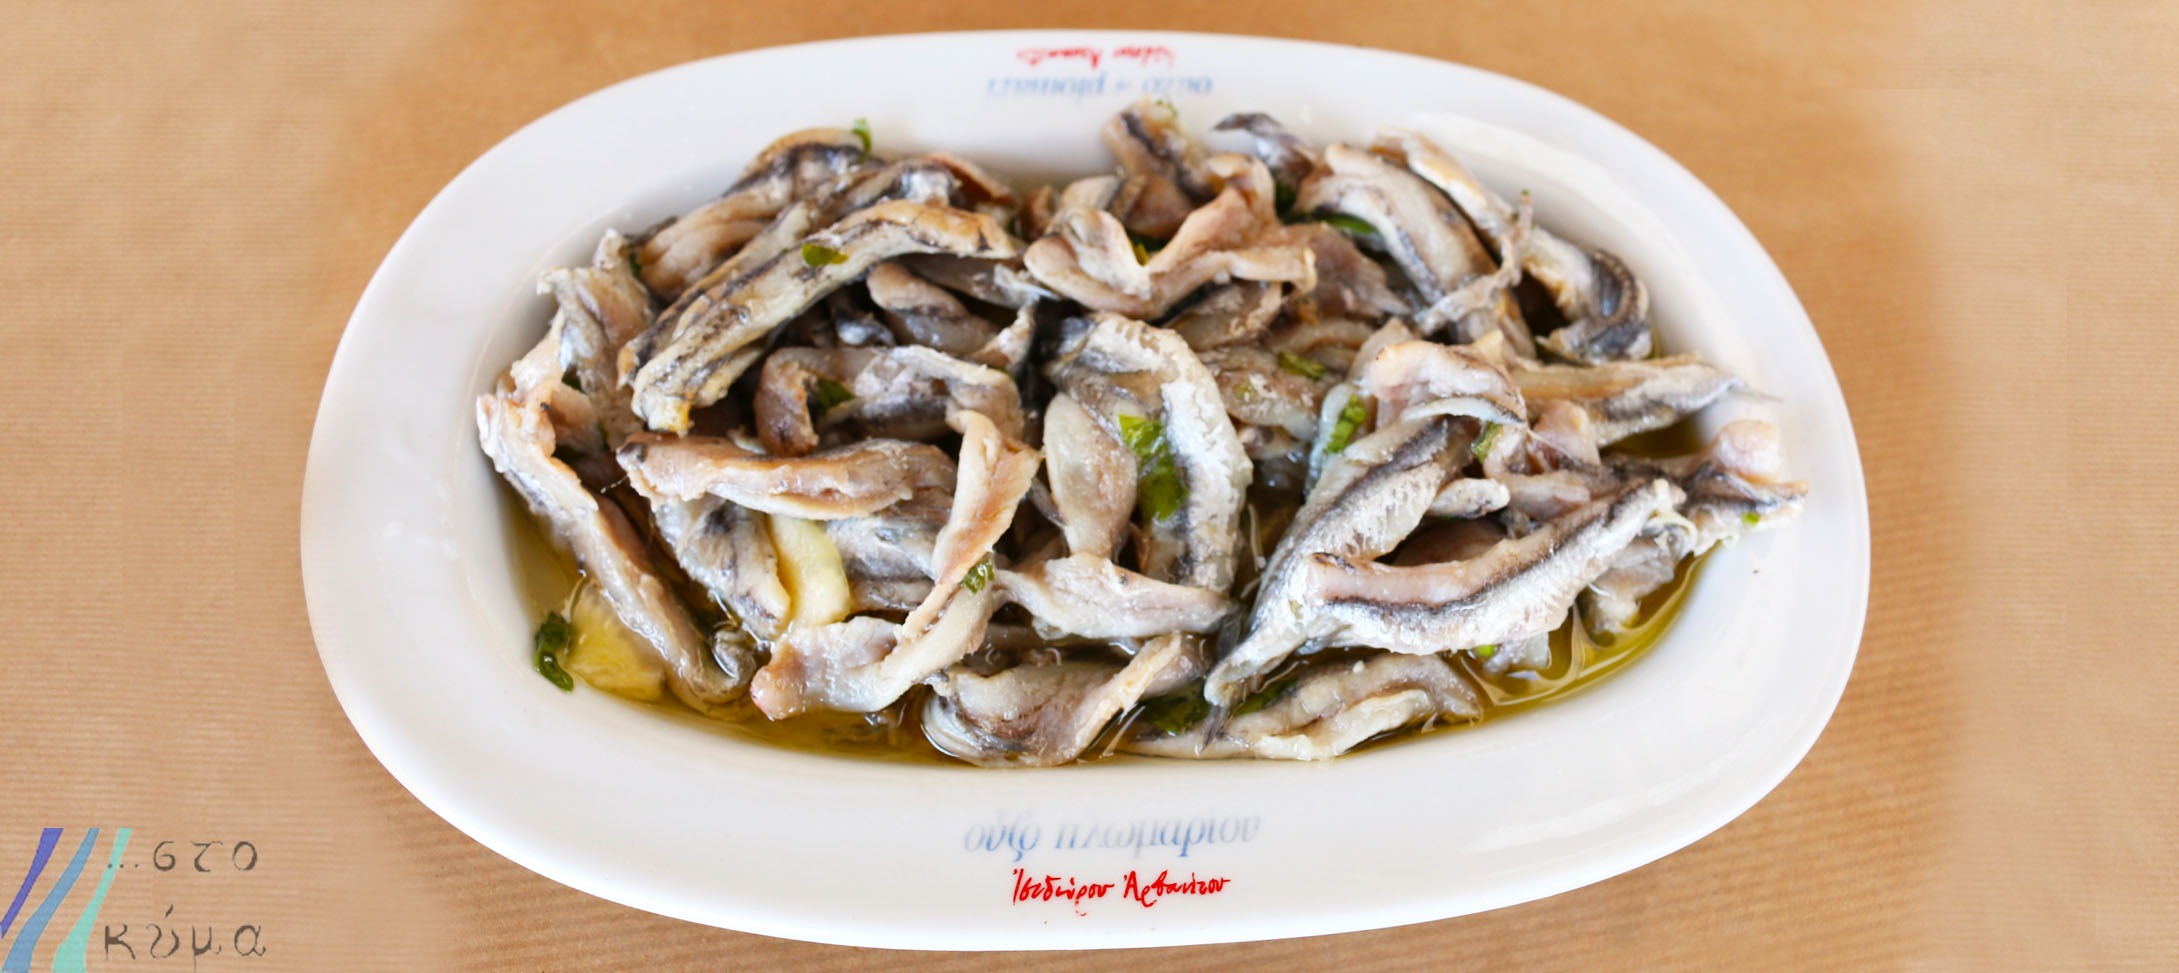 Vinegared anchovies